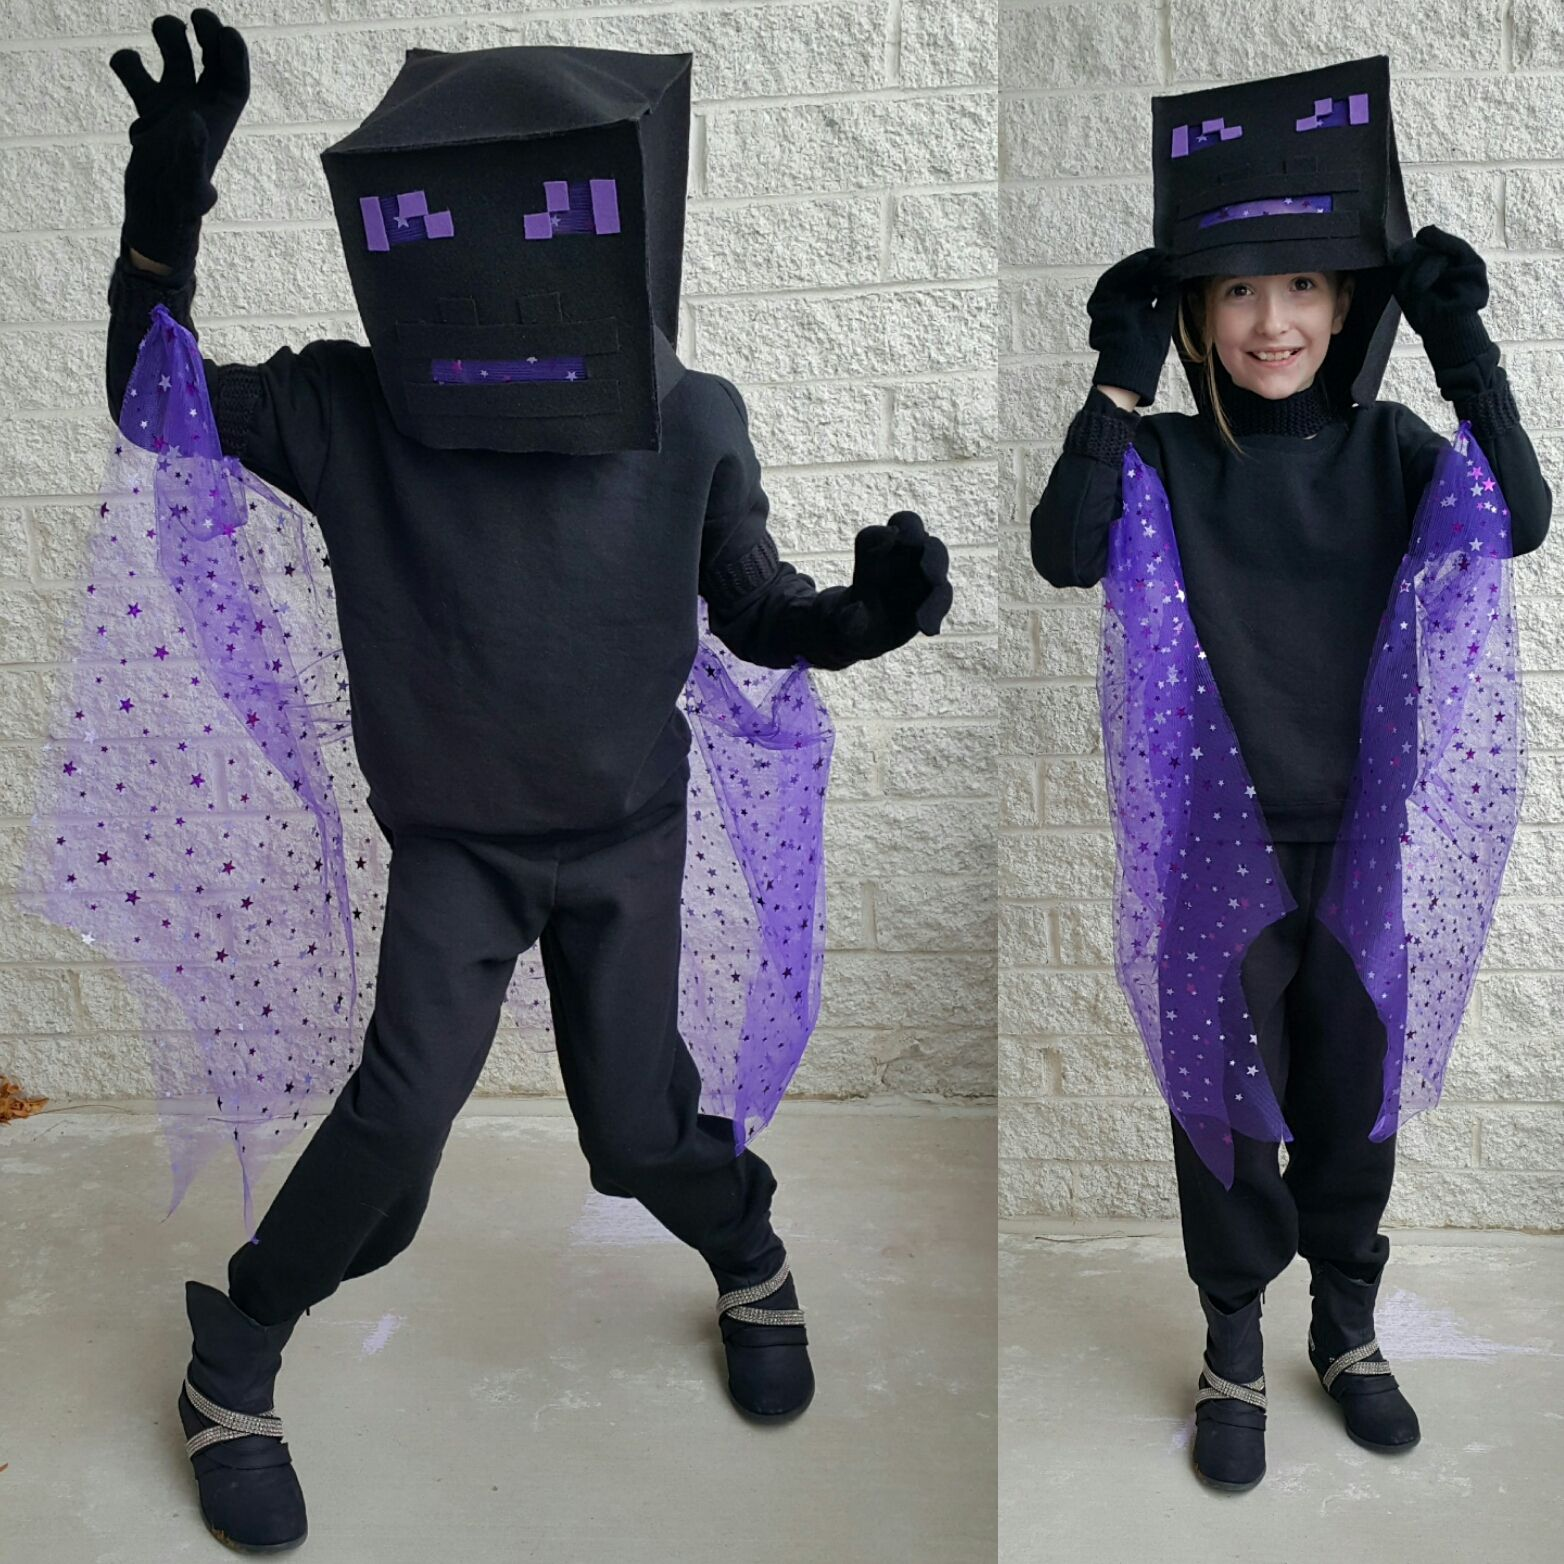 Child dressed as the Ender Dragon from Minecraft ...